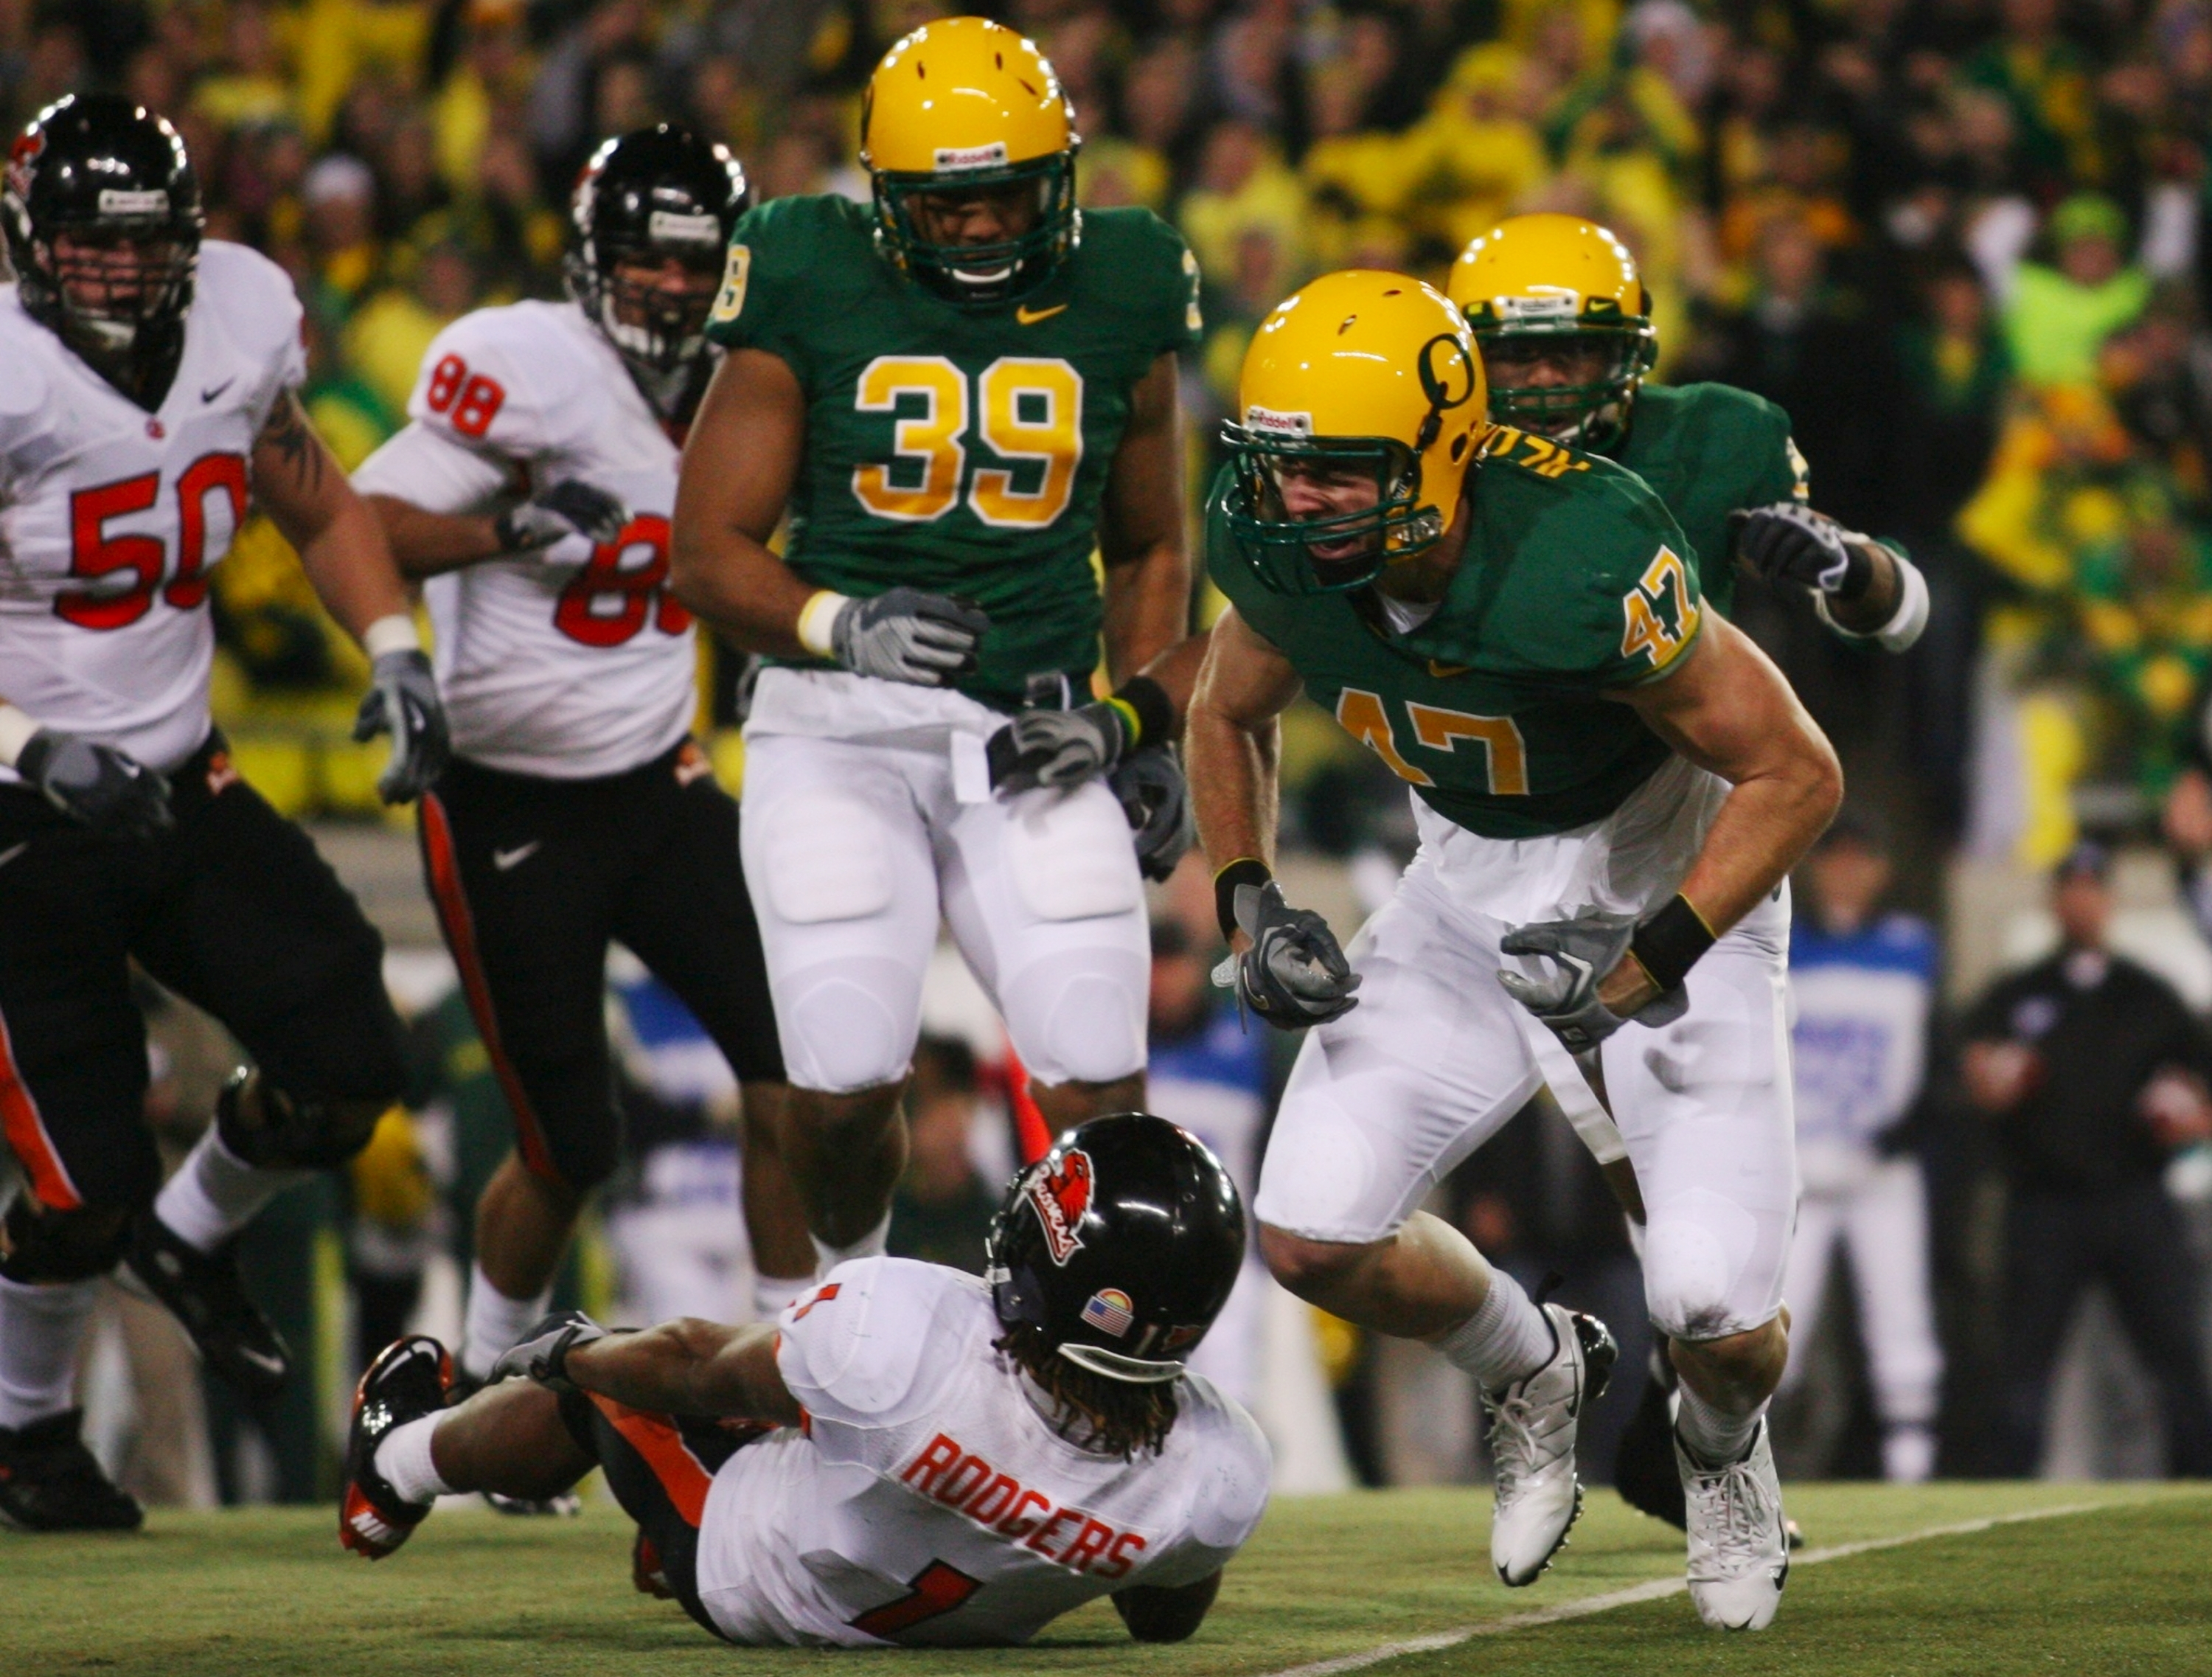 EUGENE,OR - DECEMBER 03:  Kiko Alonso #47 of the Oregon Ducks celebrates tackling Jacquizz Rodgers #1 of the Oregon State Beavers during the second quarter of the game at Autzen Stadium on December 3, 2009 in Eugene, Oregon.  (Photo by Tom Hauck/Getty Ima